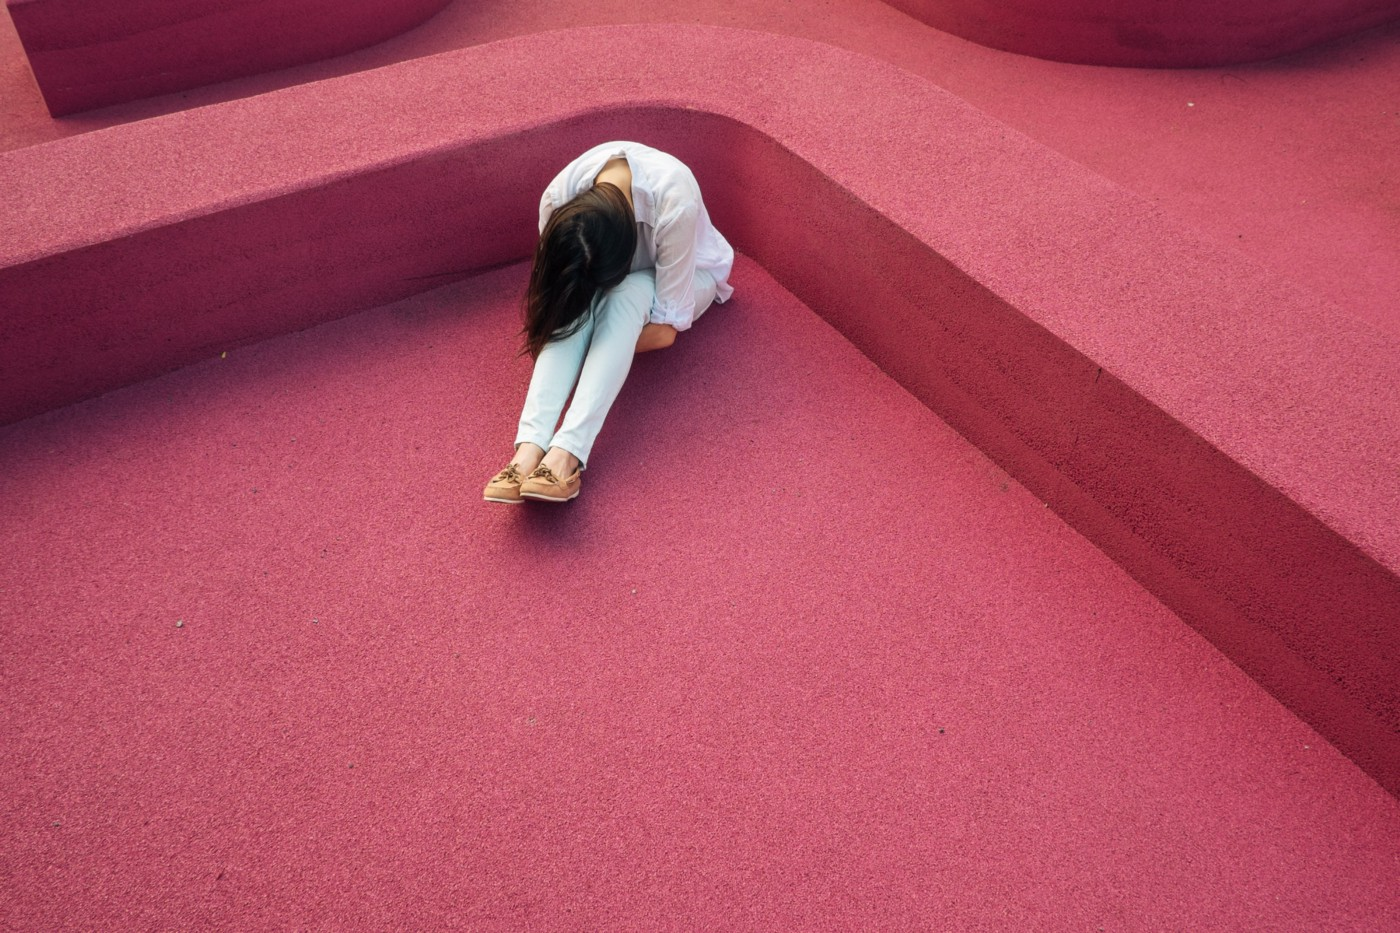 A person bent over with sadness in a pink room.